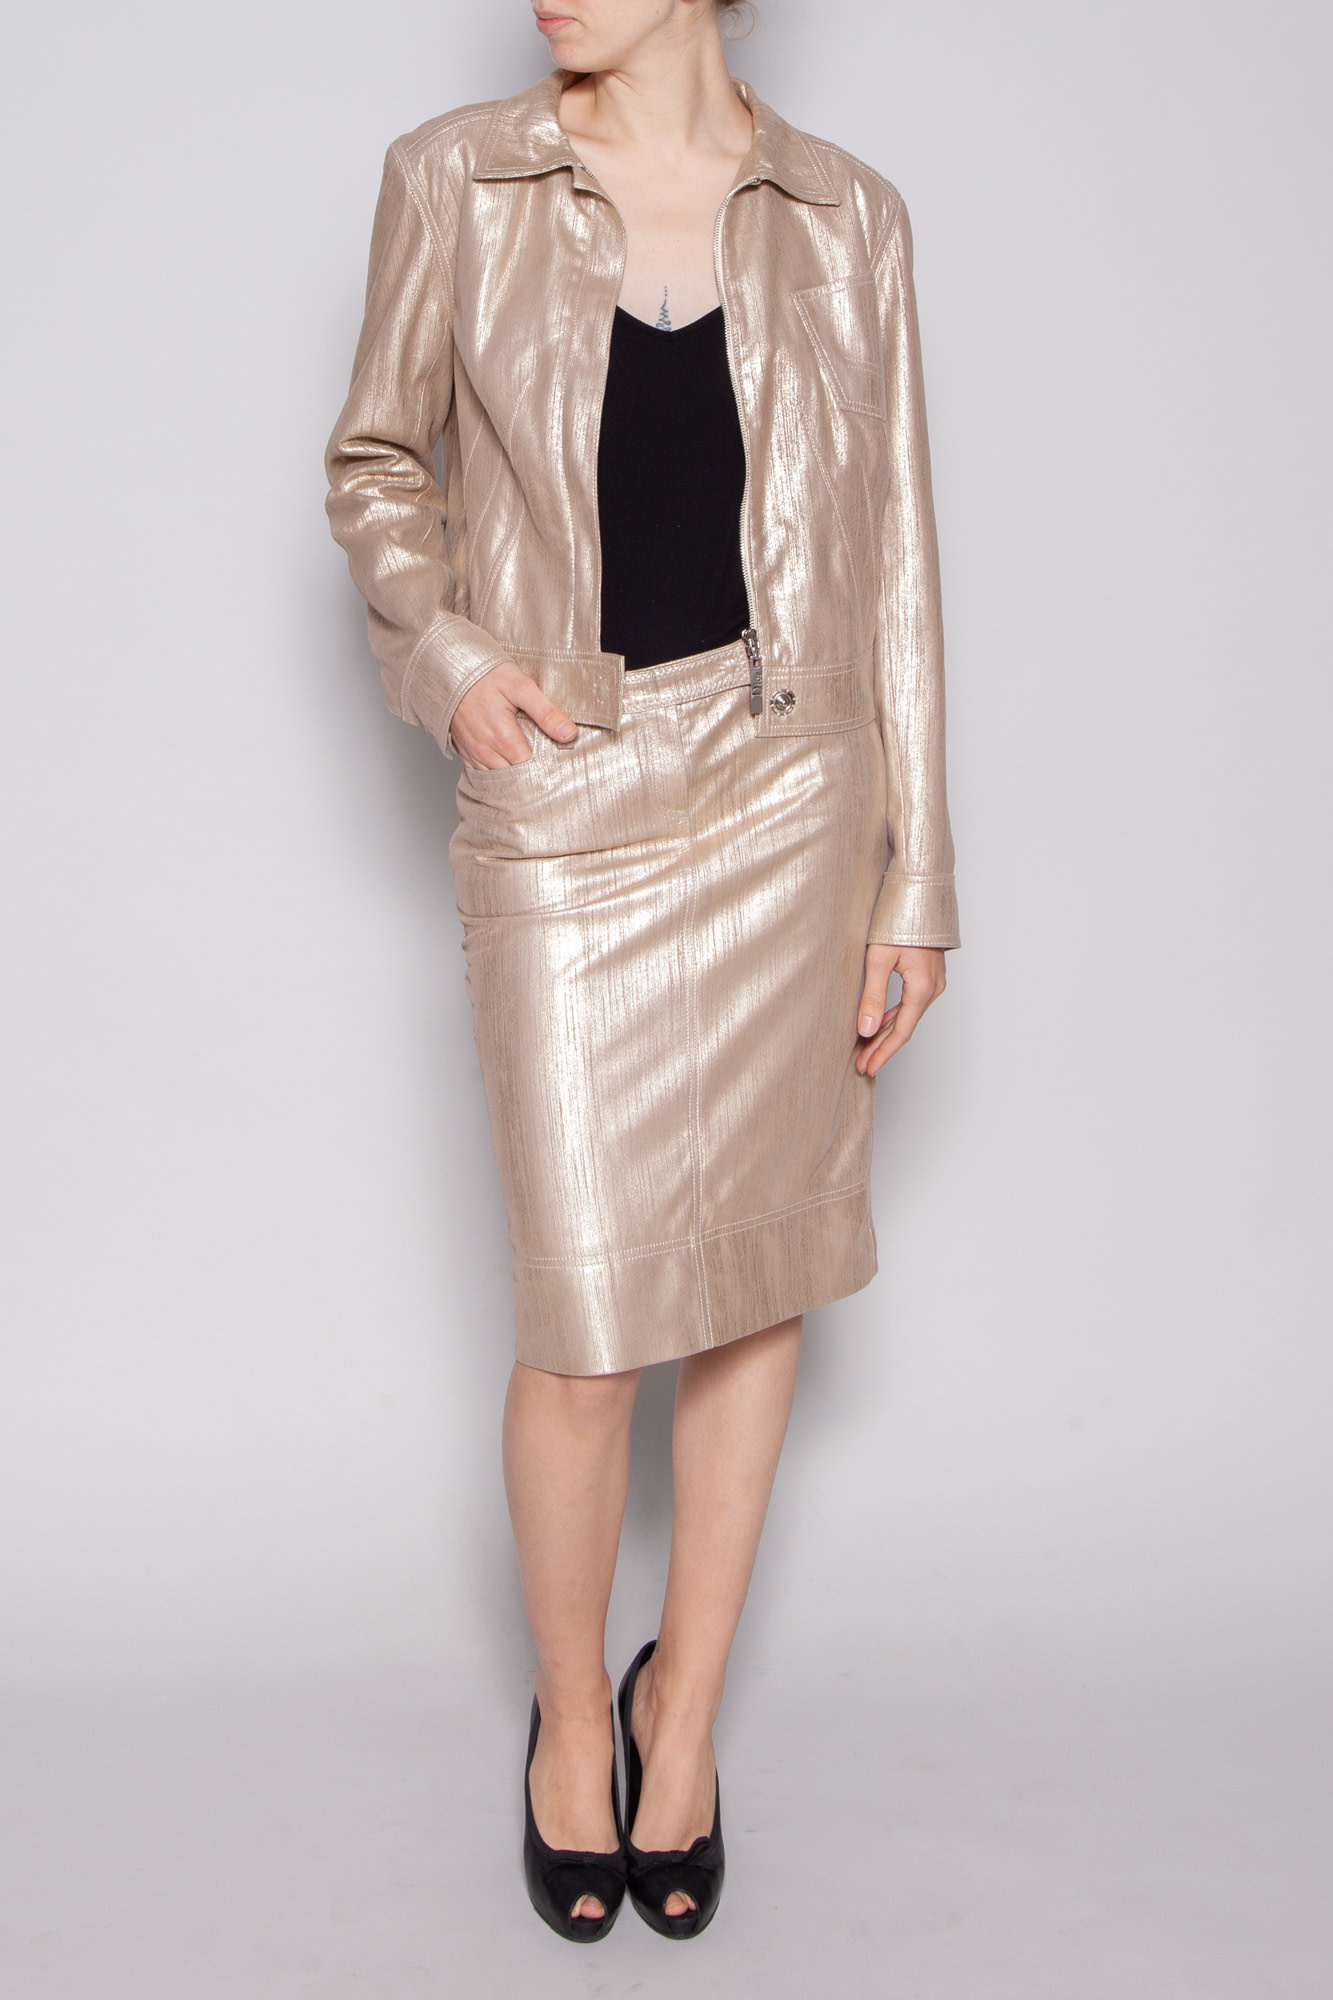 Christian Dior GOLD LEATHER SKIRT